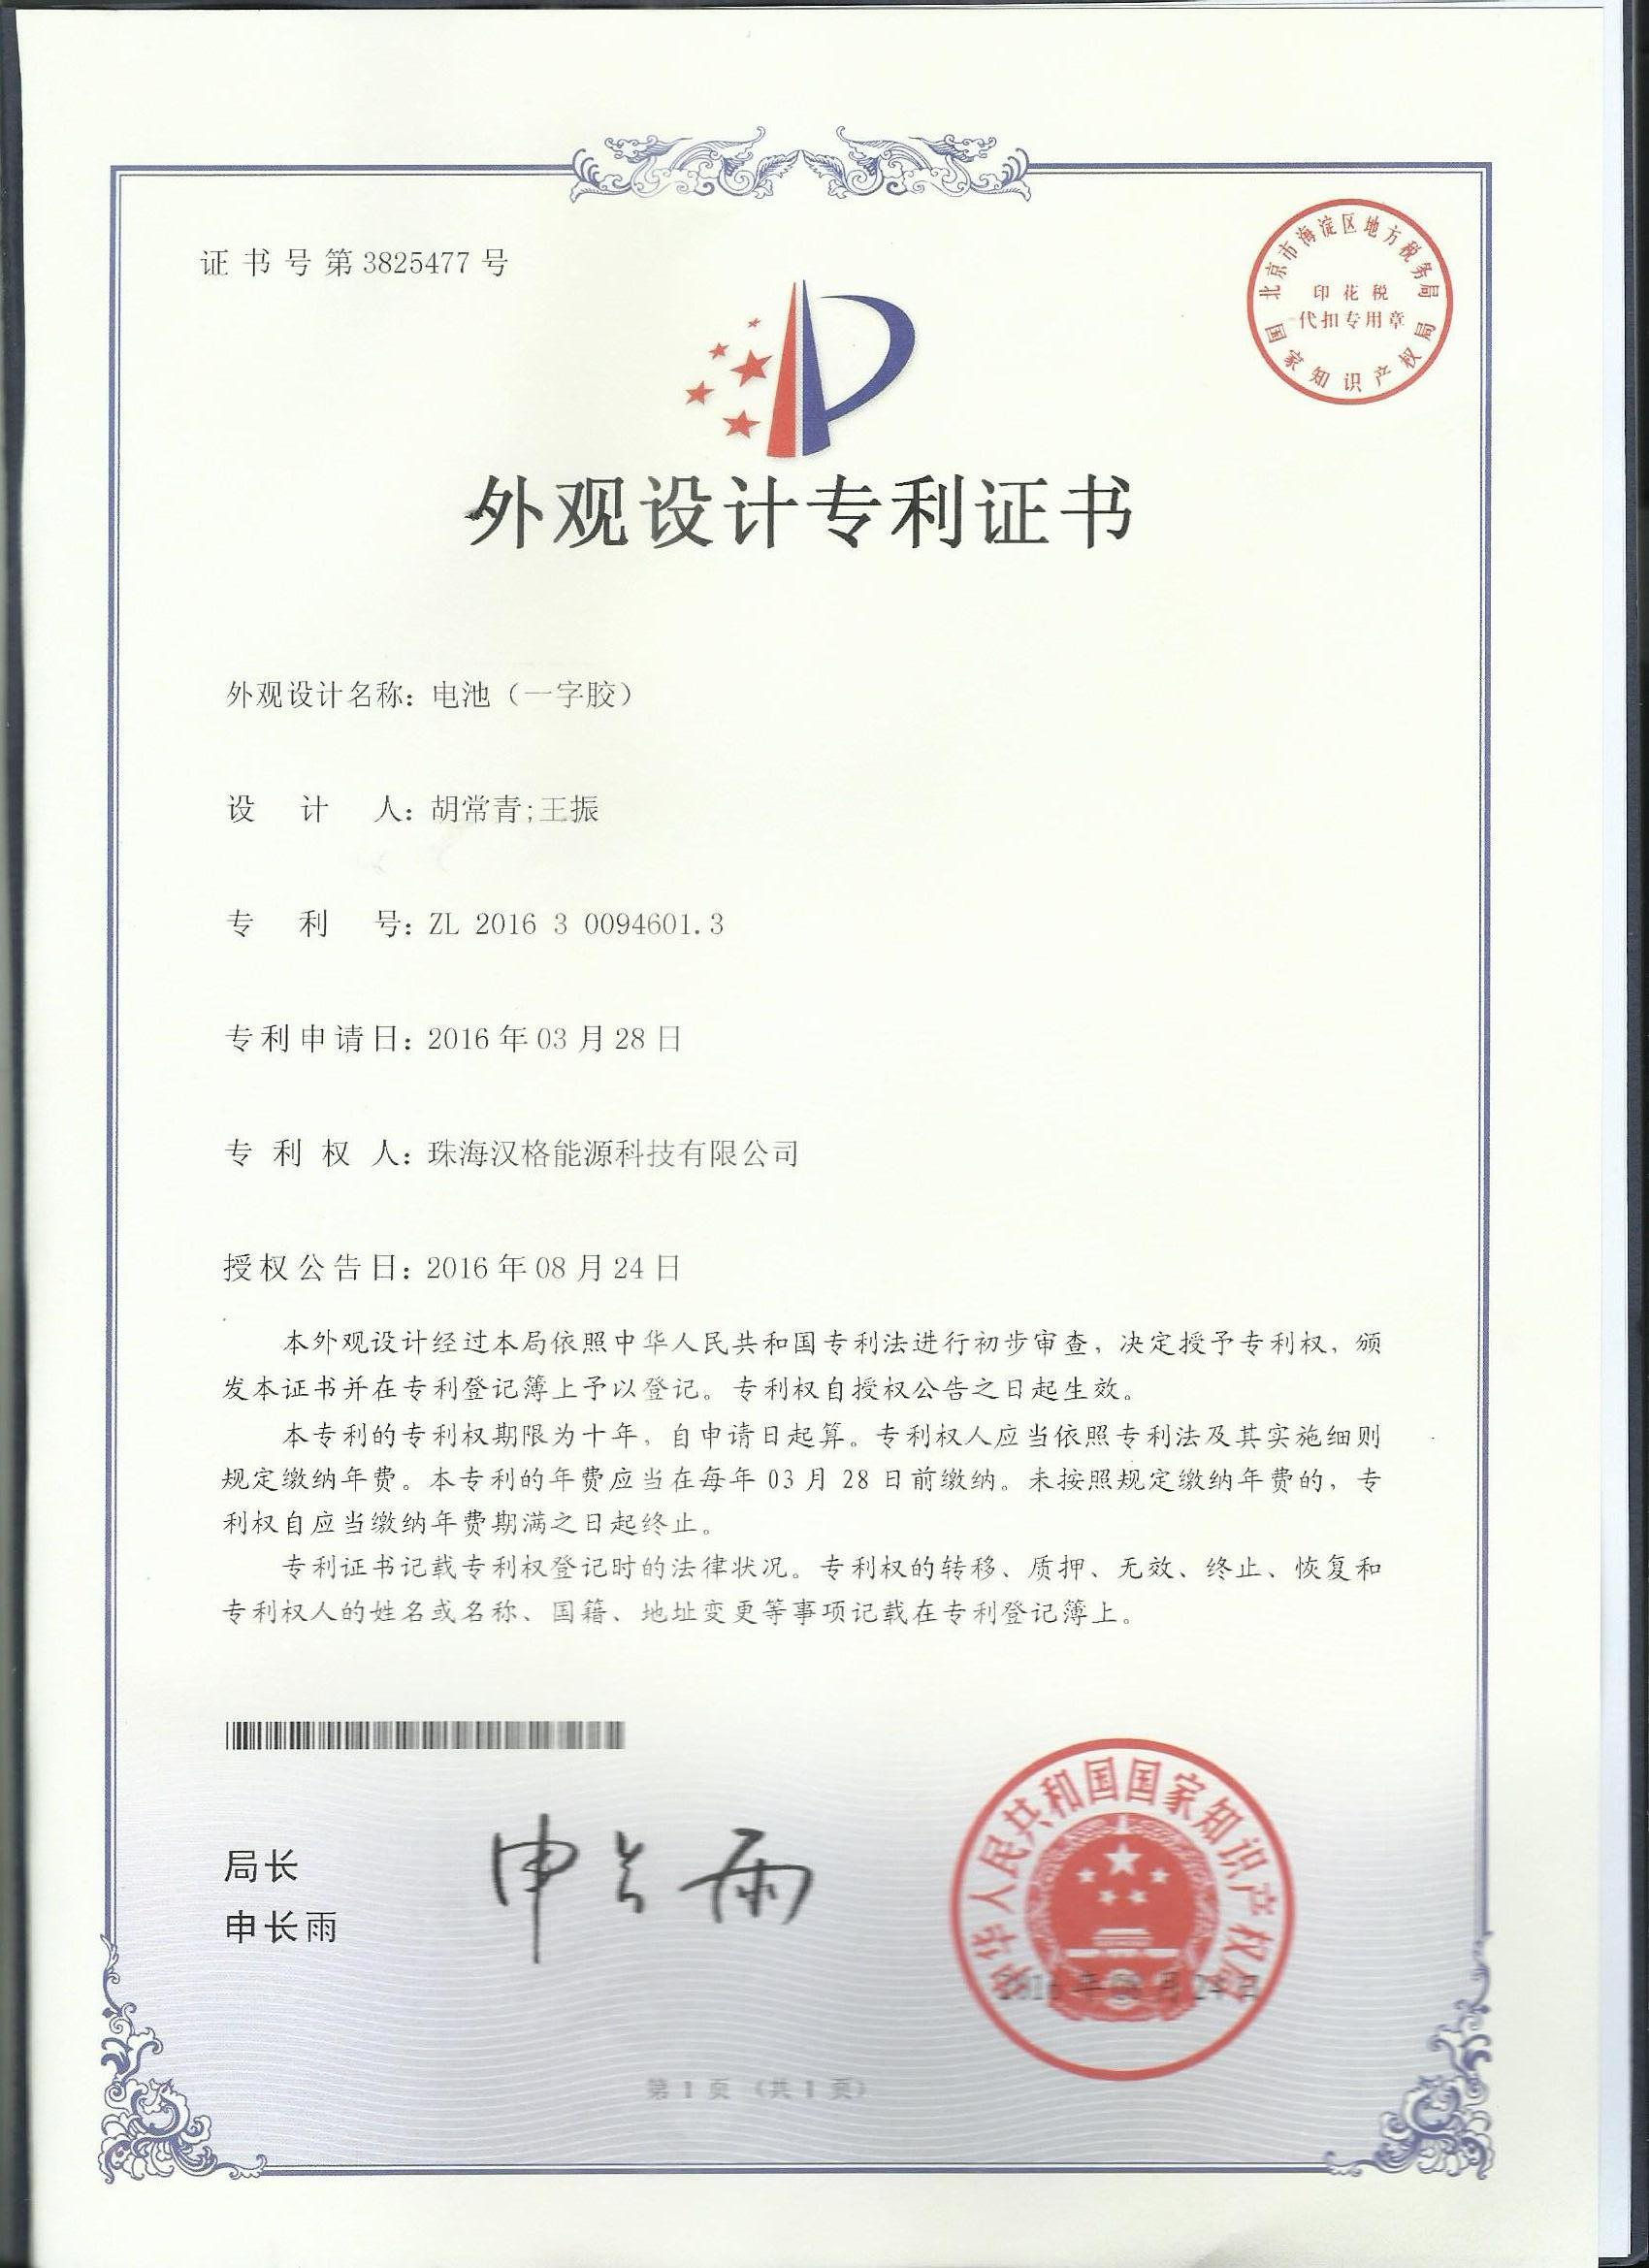 Utility model patent certificate 10